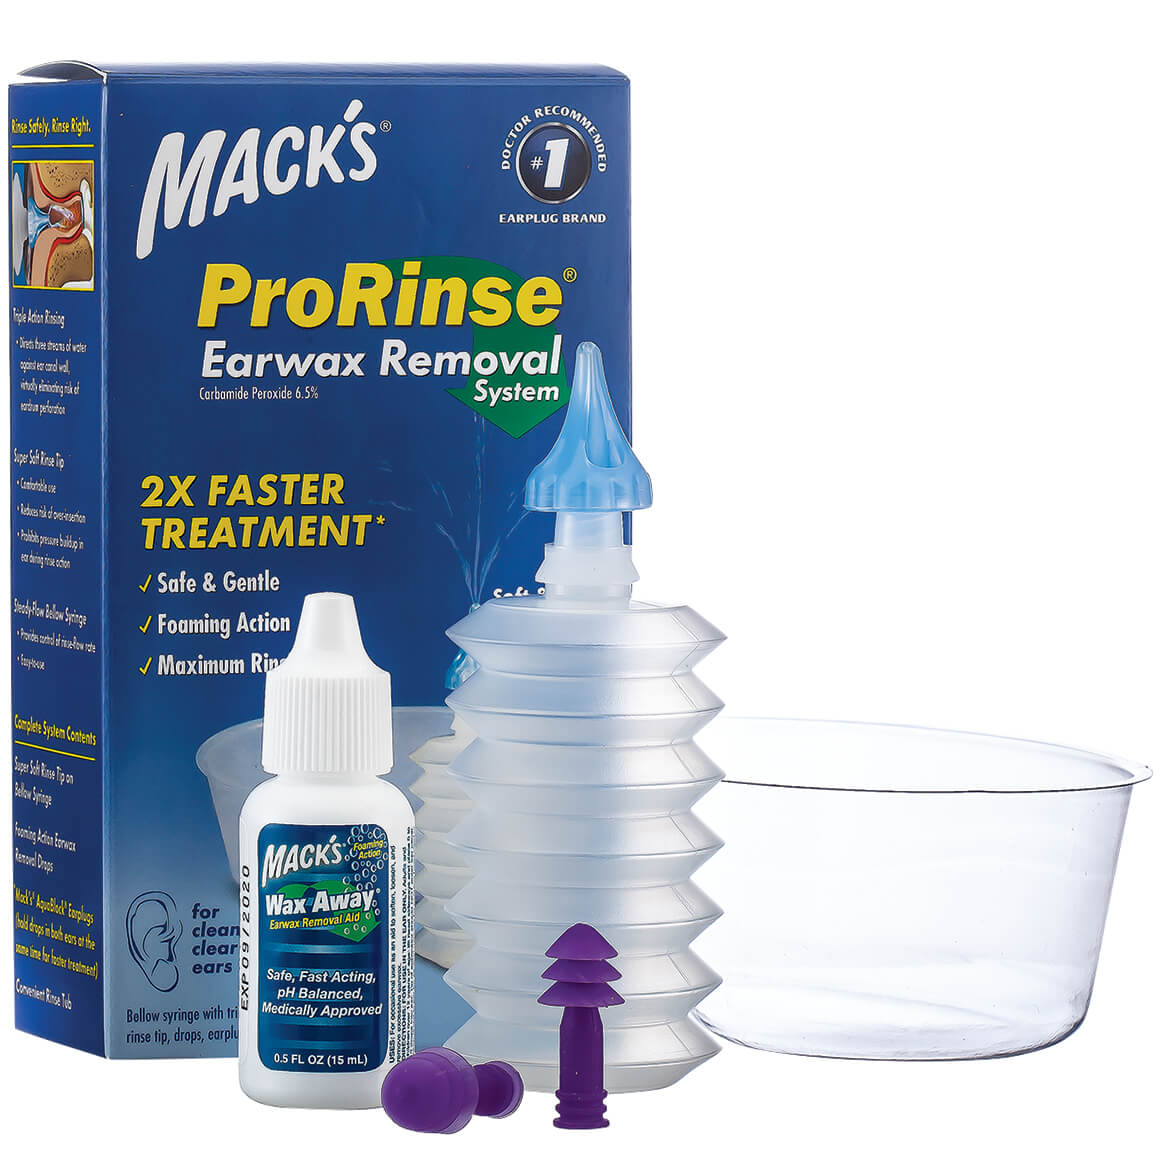 ProRinse® Earwax Removal System-369443